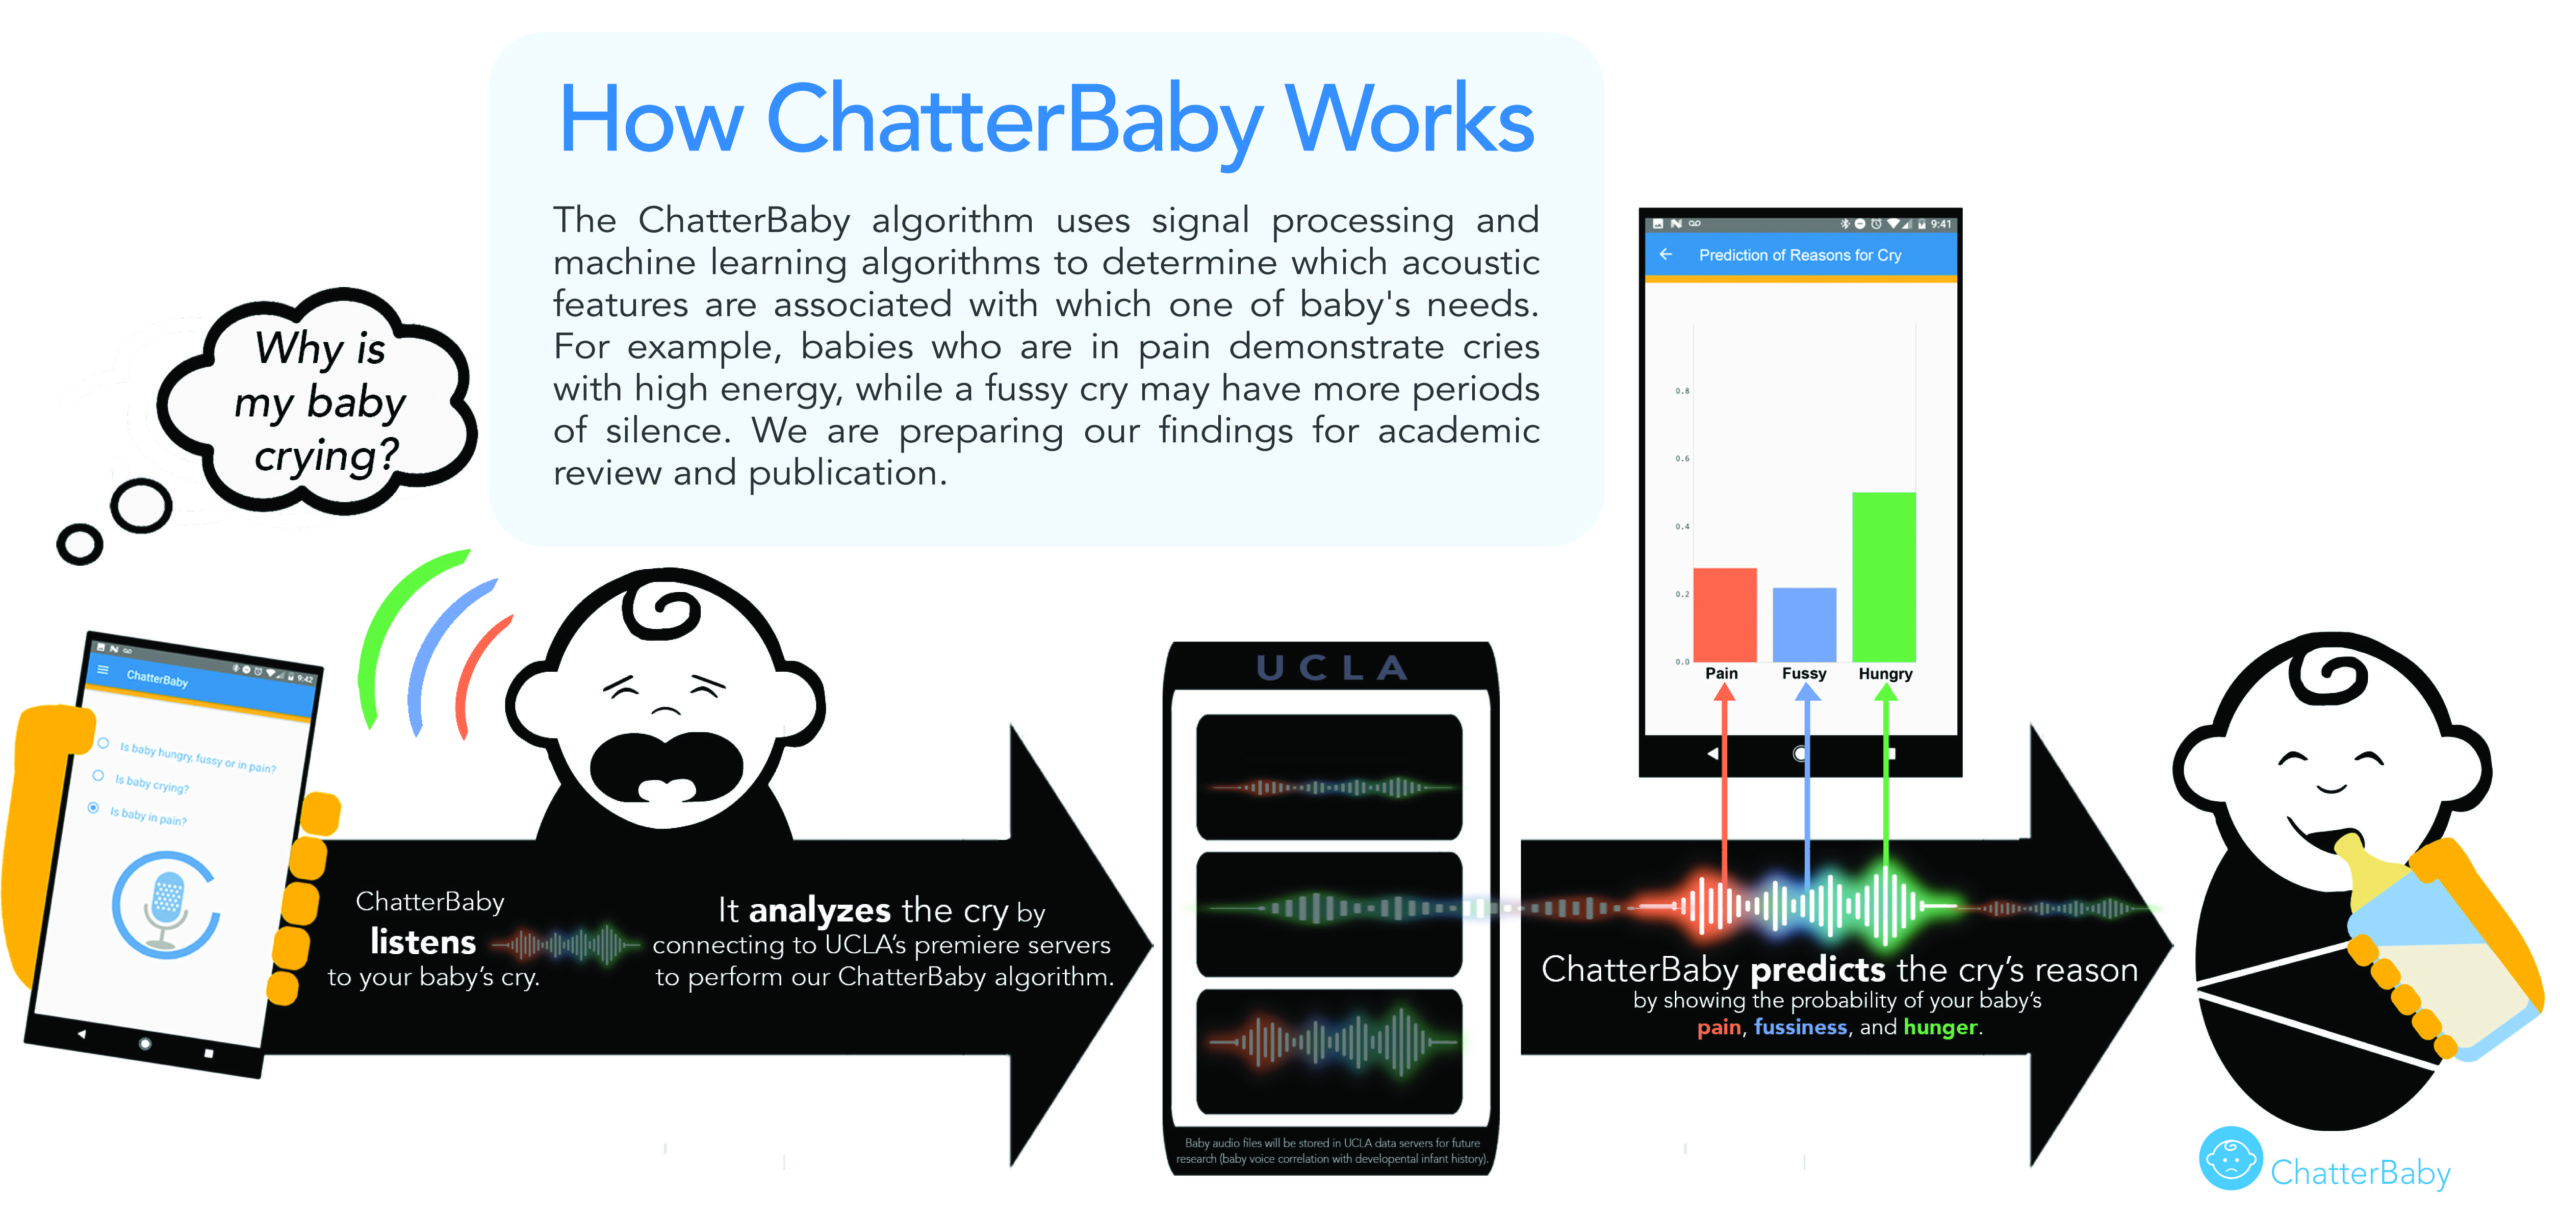 ChatterBaby